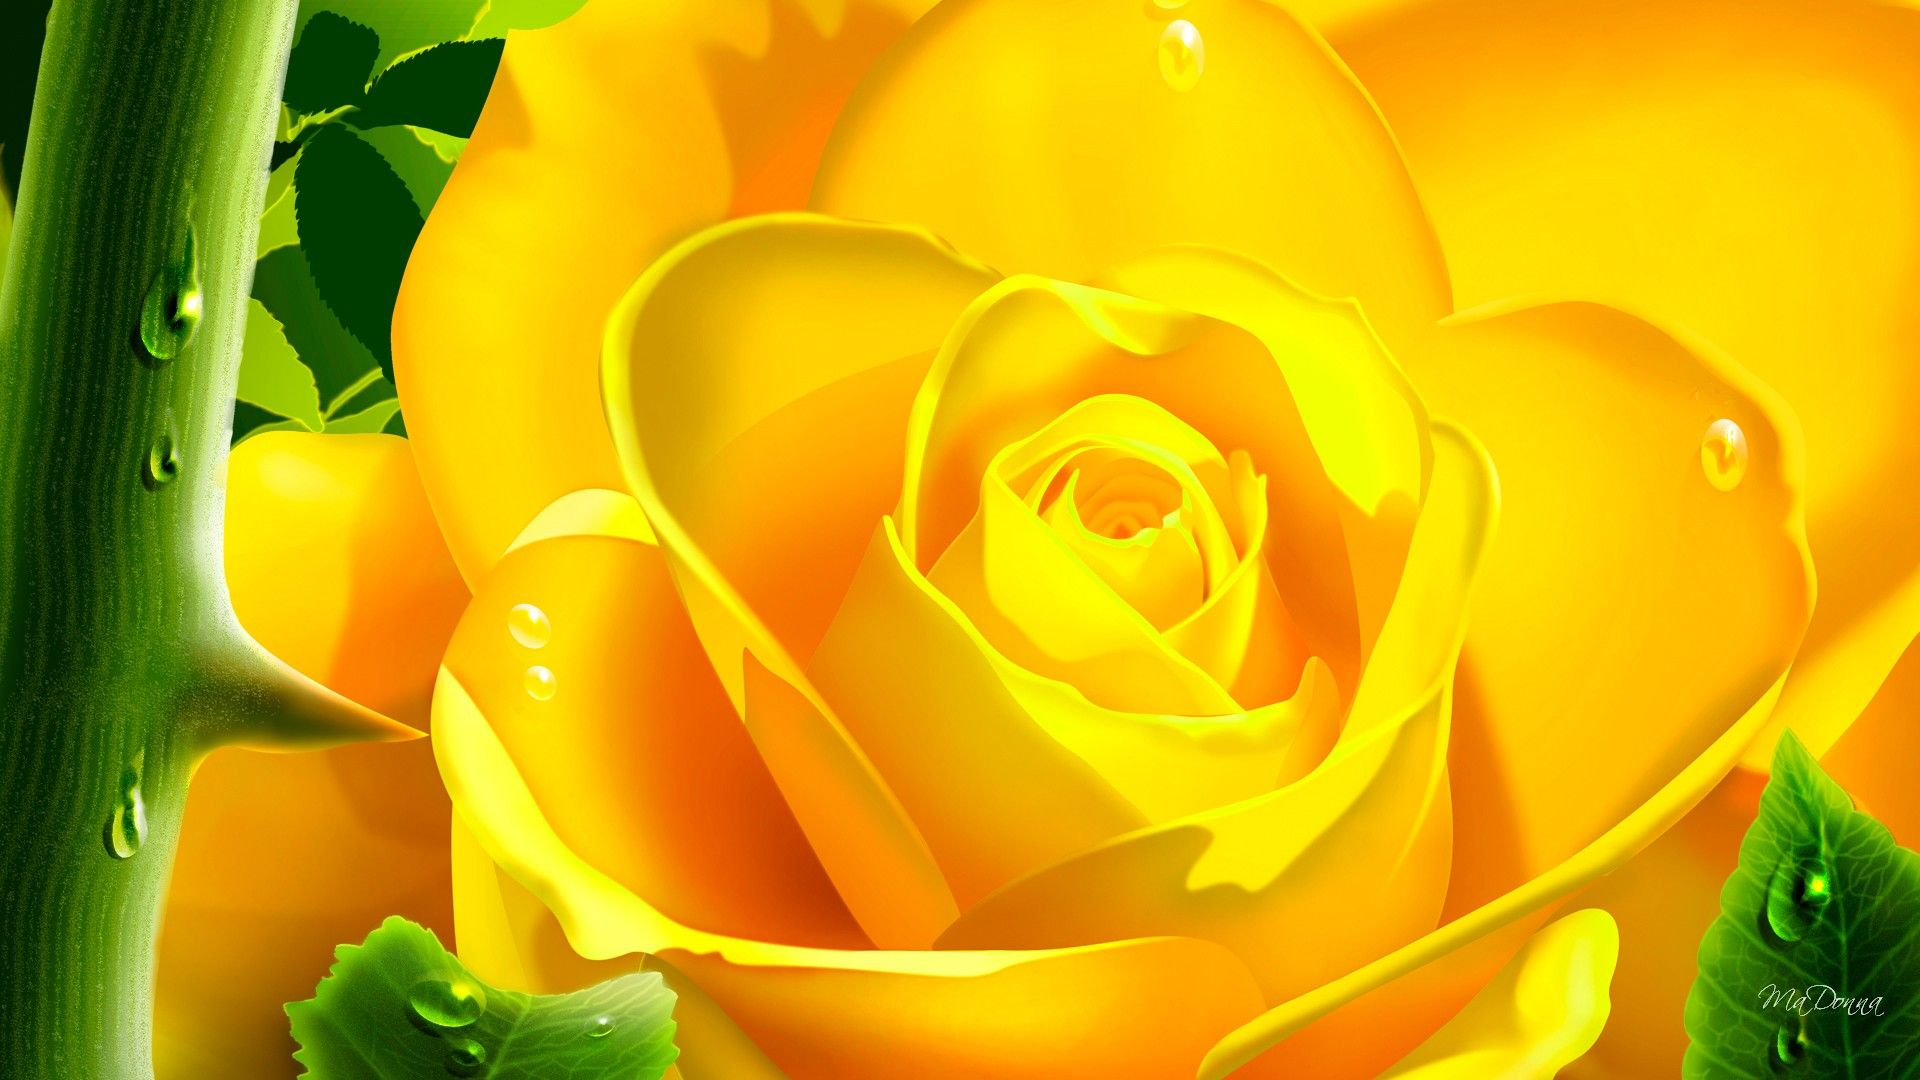 yellow rose flowers wallpapers the best flowers ideas 1920 1080